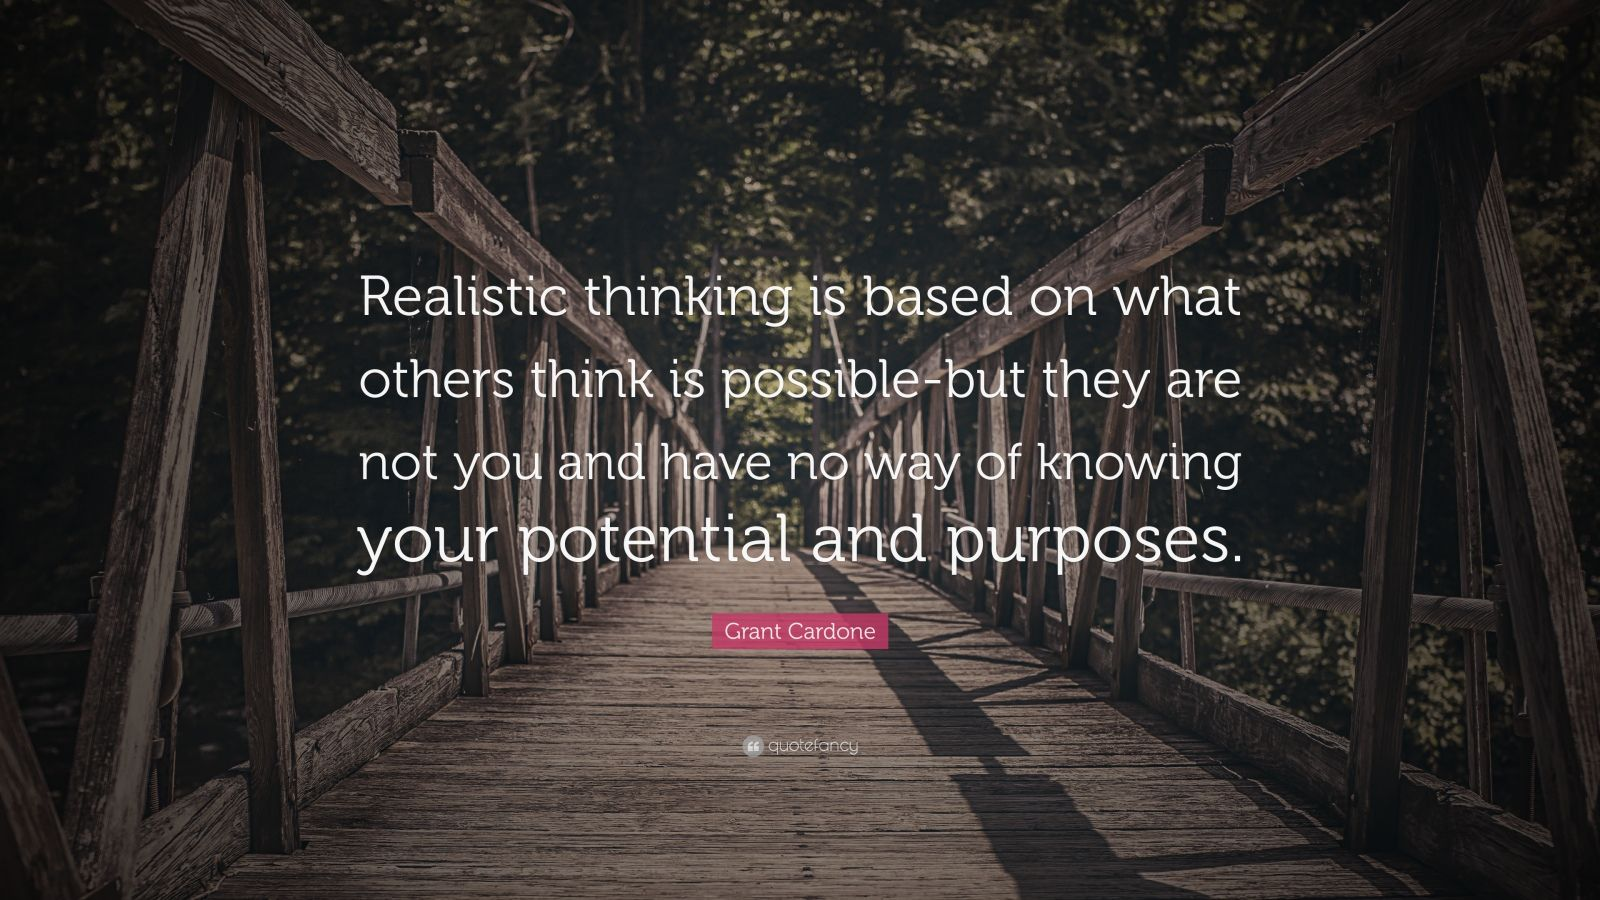 """Grant Cardone Quote: """"Realistic thinking is based on what others think is possible-but they are not you and have no way of knowing your potential and purposes."""""""